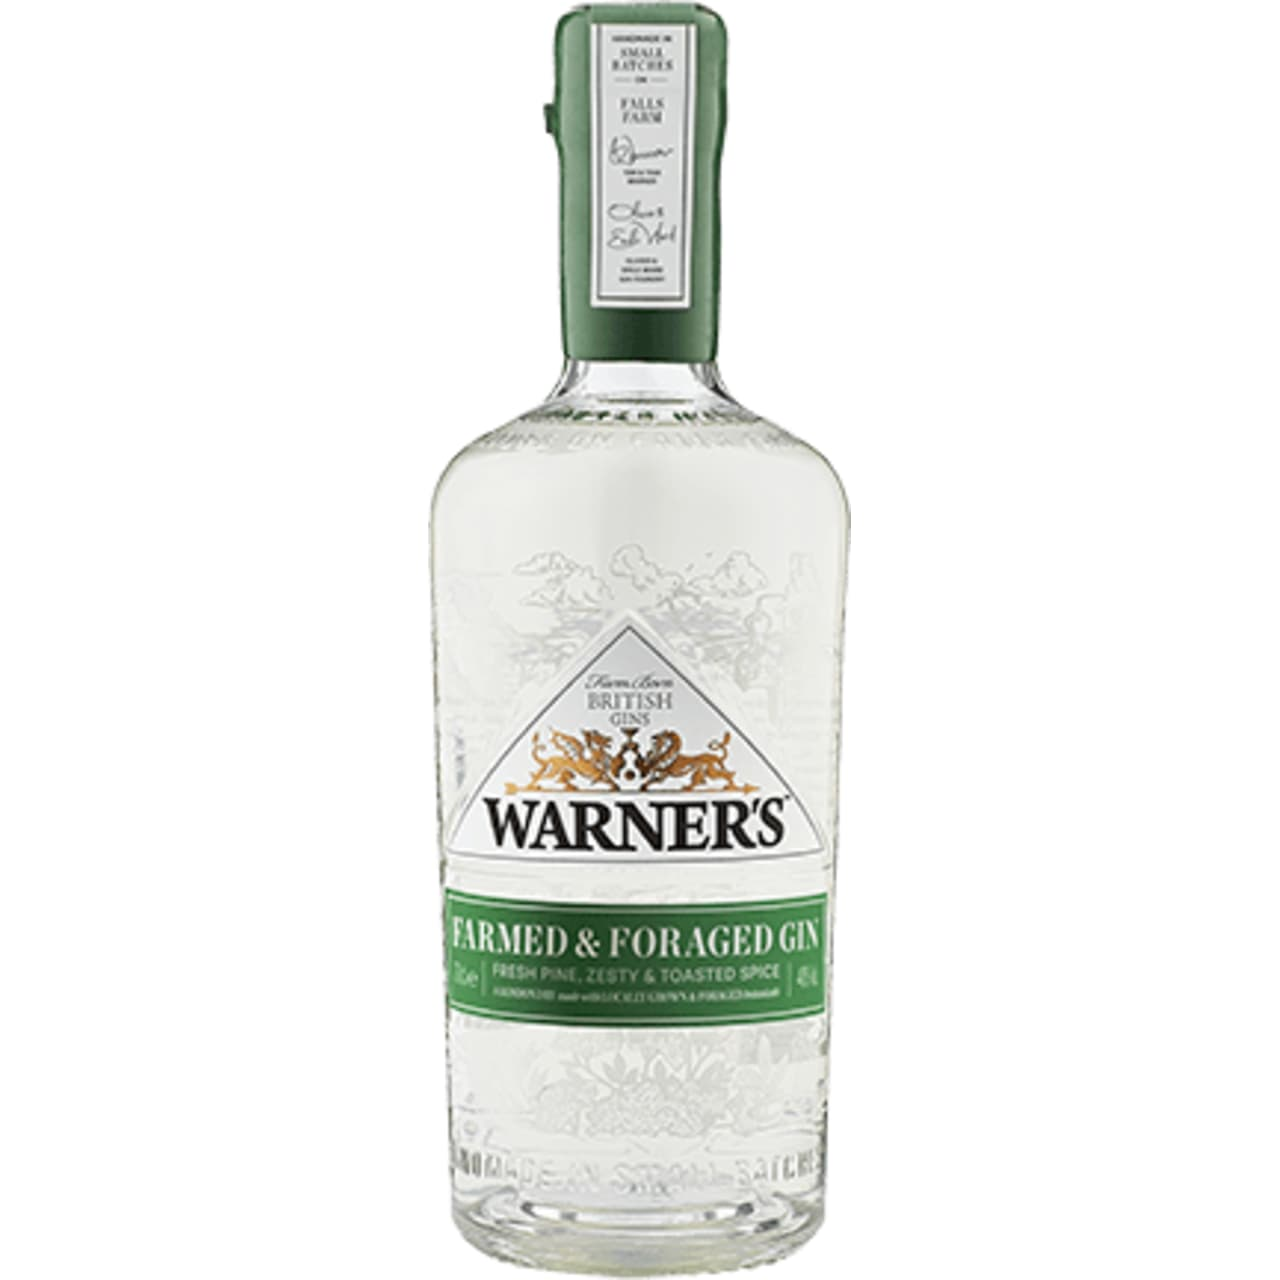 Product Image - Warner's Farmed & Foraged Gin